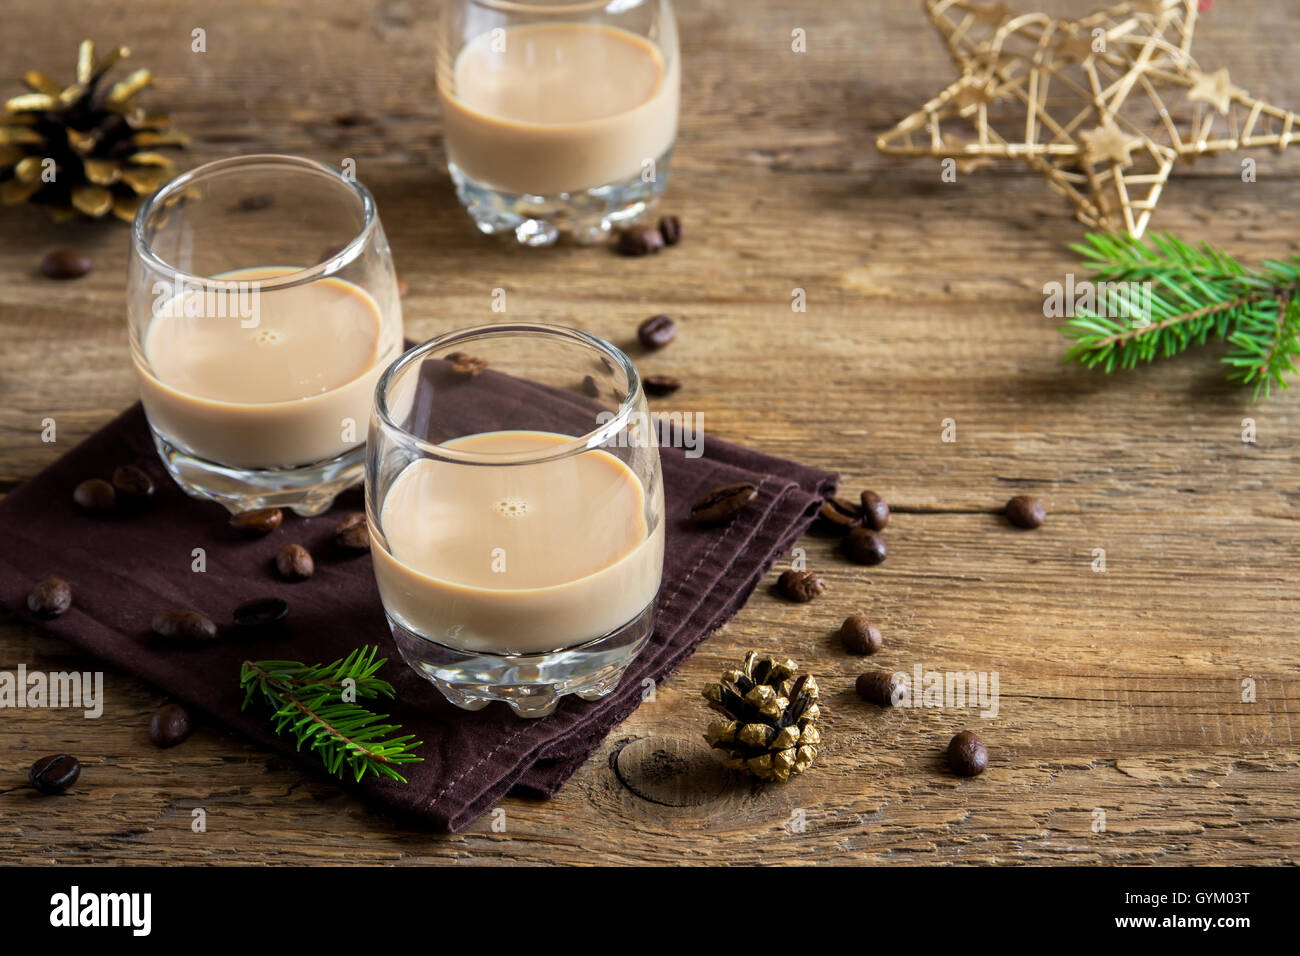 Irish cream coffee liqueur with Christmas decoration and ornaments over rustic wooden background - festive Christmas alcoholic d Stock Photo